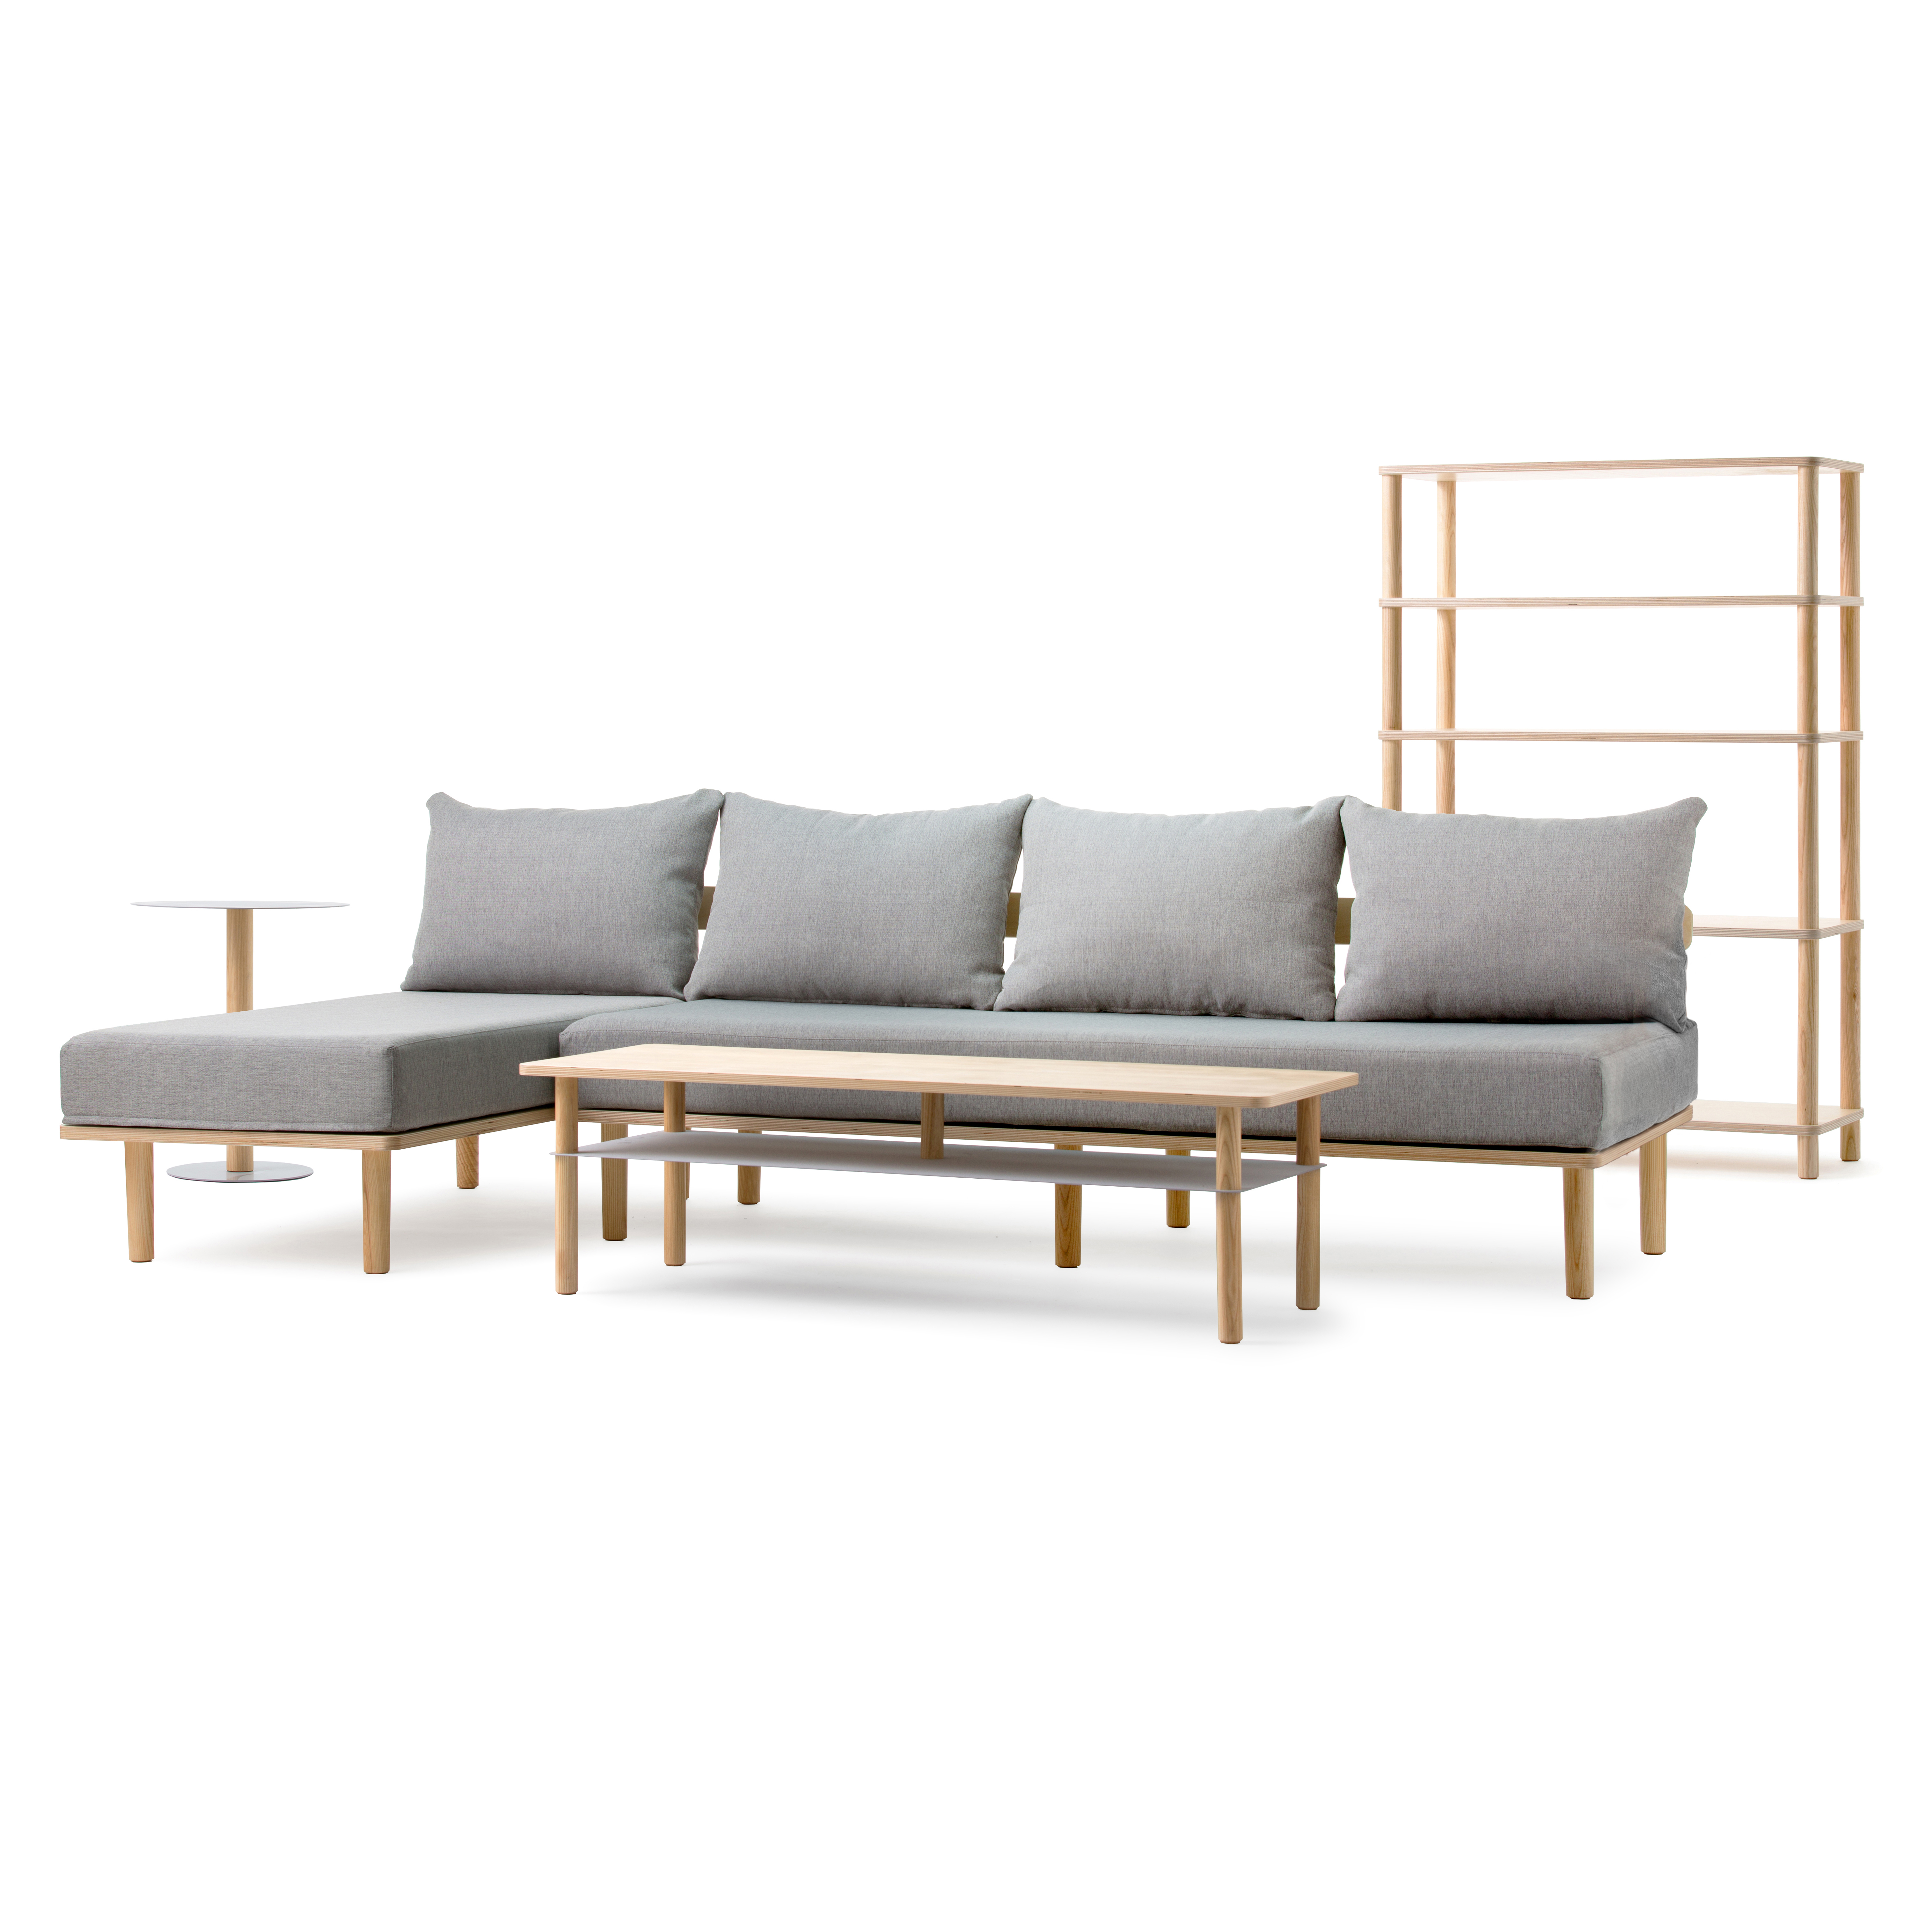 Greycork Felix Living Room Set | Huckberry